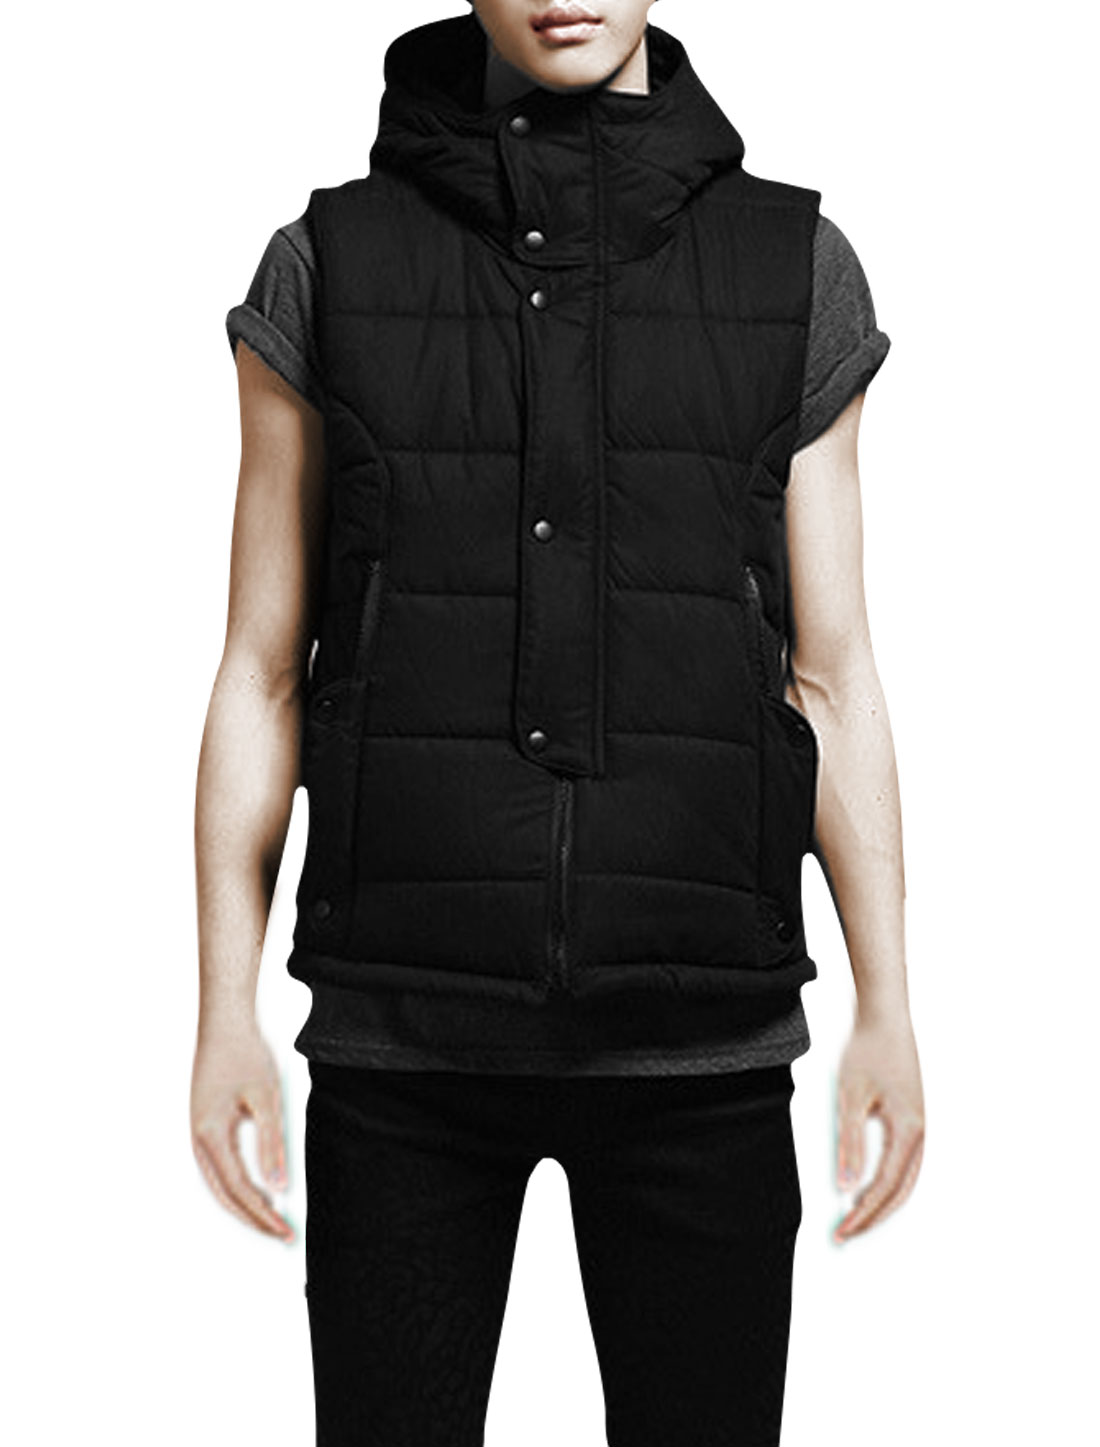 Mens Sleeveless Zip Closure Front New Fashion Black Padded Vest M